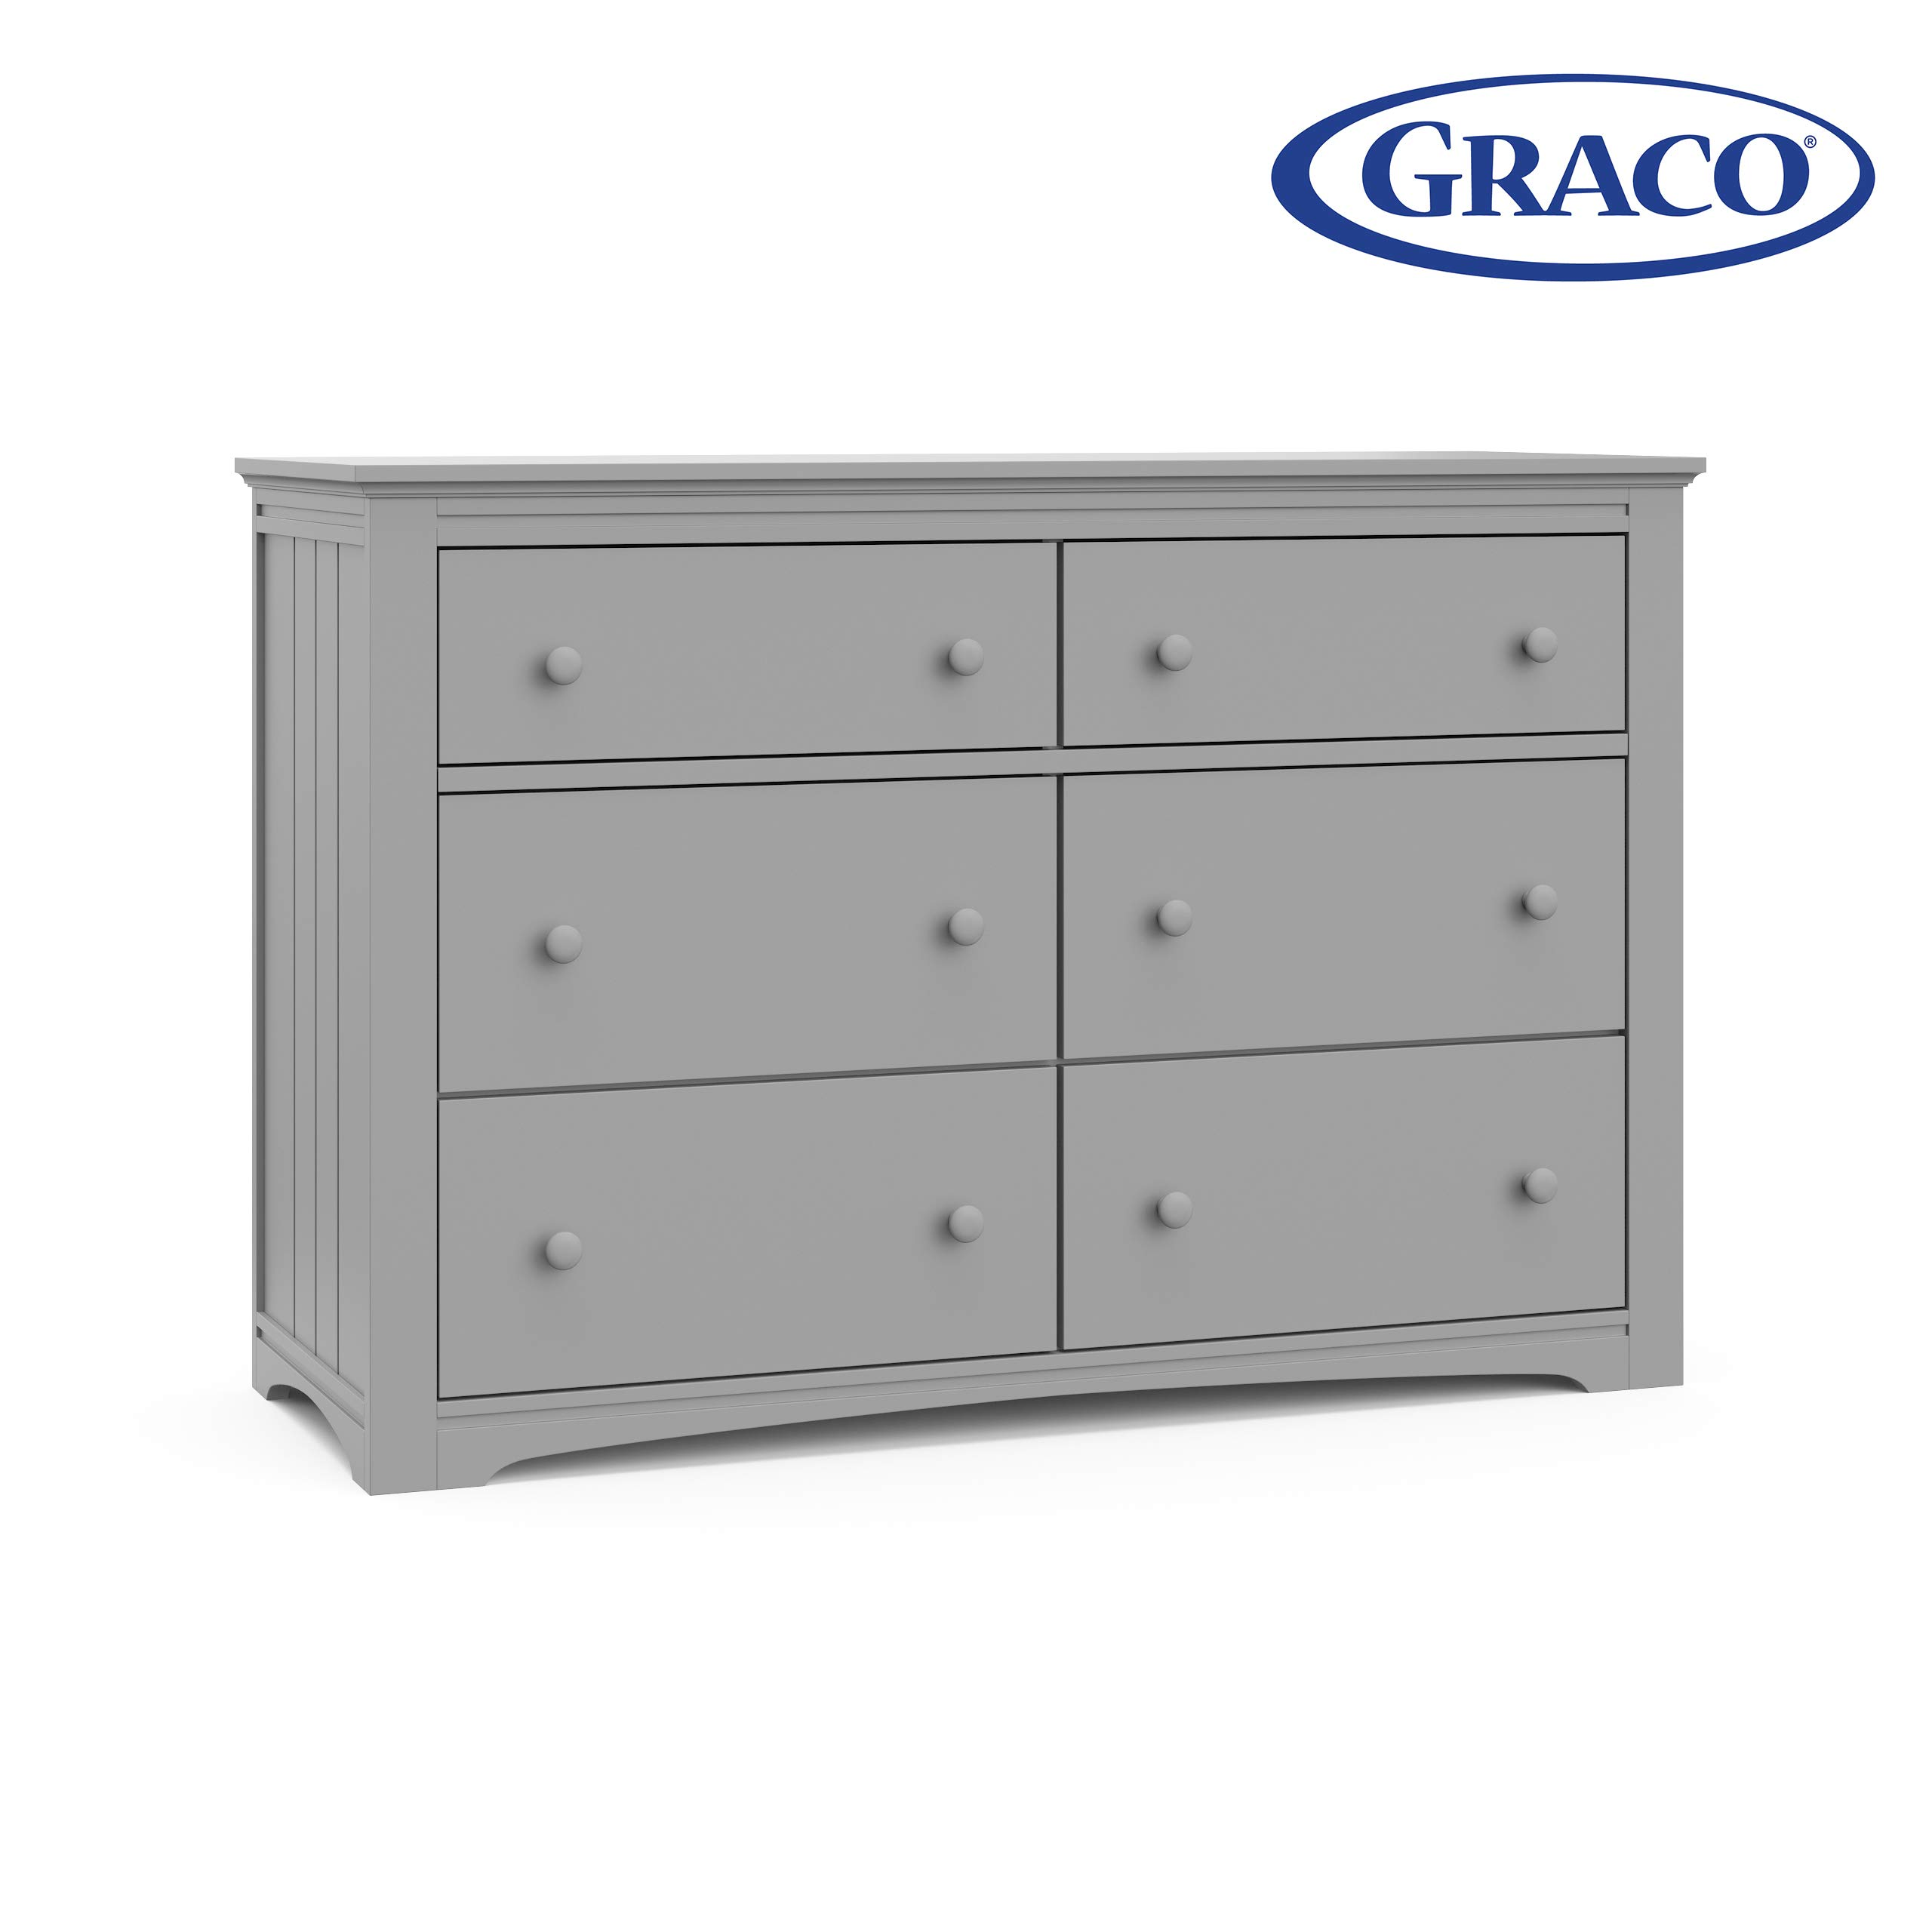 Storkcraft 03706-10F Graco Hadley 6 Drawer (Pebble Gray) Dresser, by Stork Craft